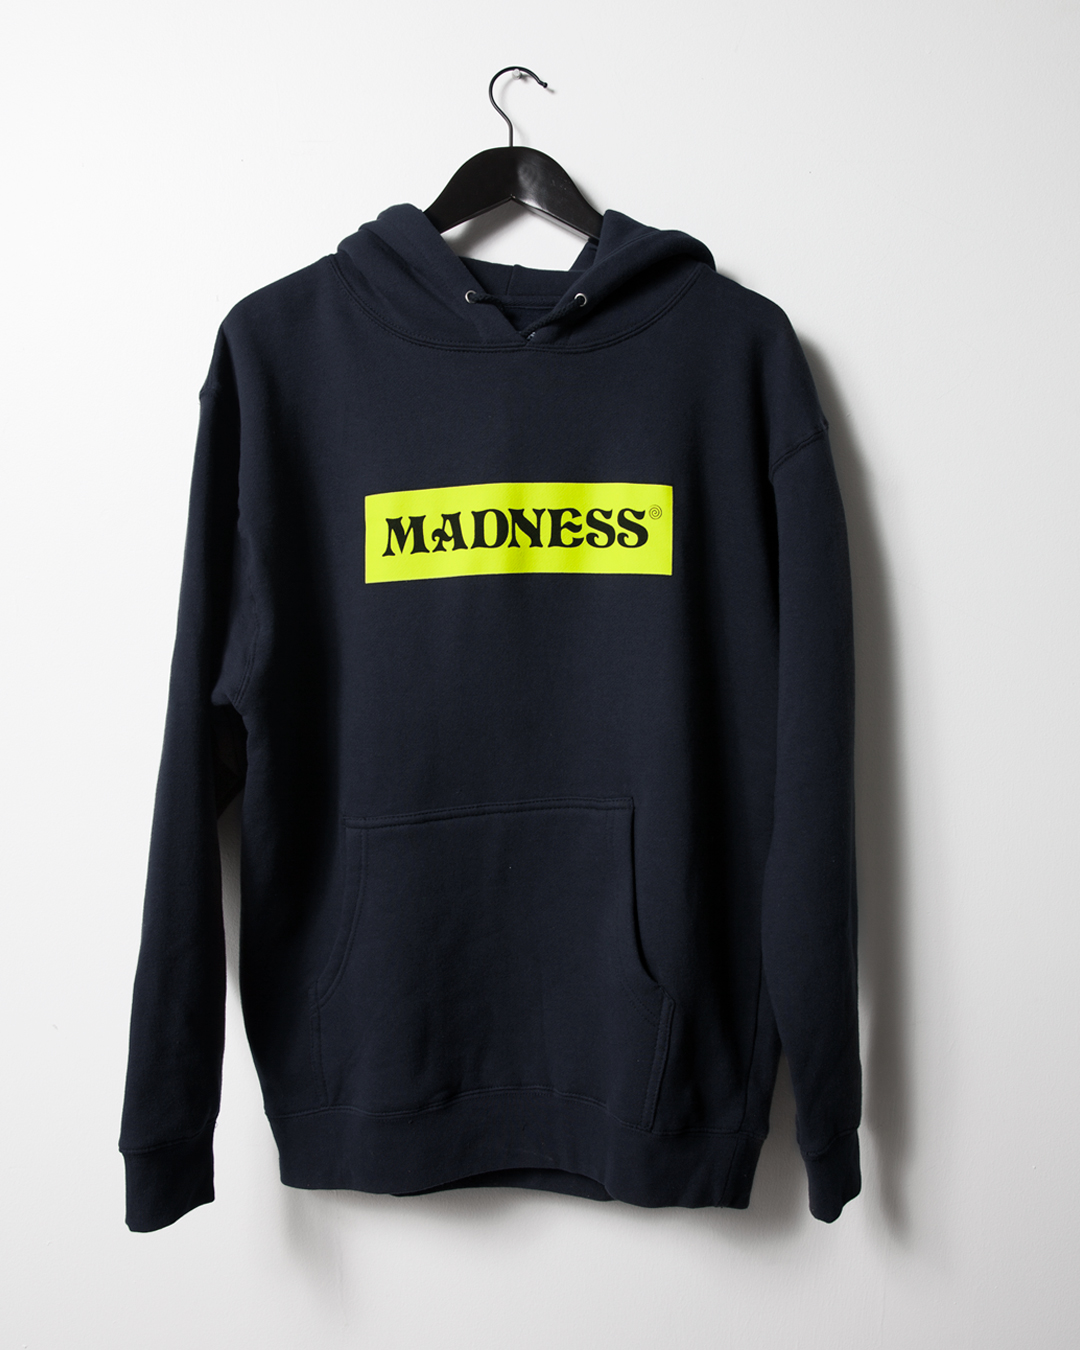 madness-skateboards-BAR-NAVY-PULLOVER-FRONT-1350.jpg